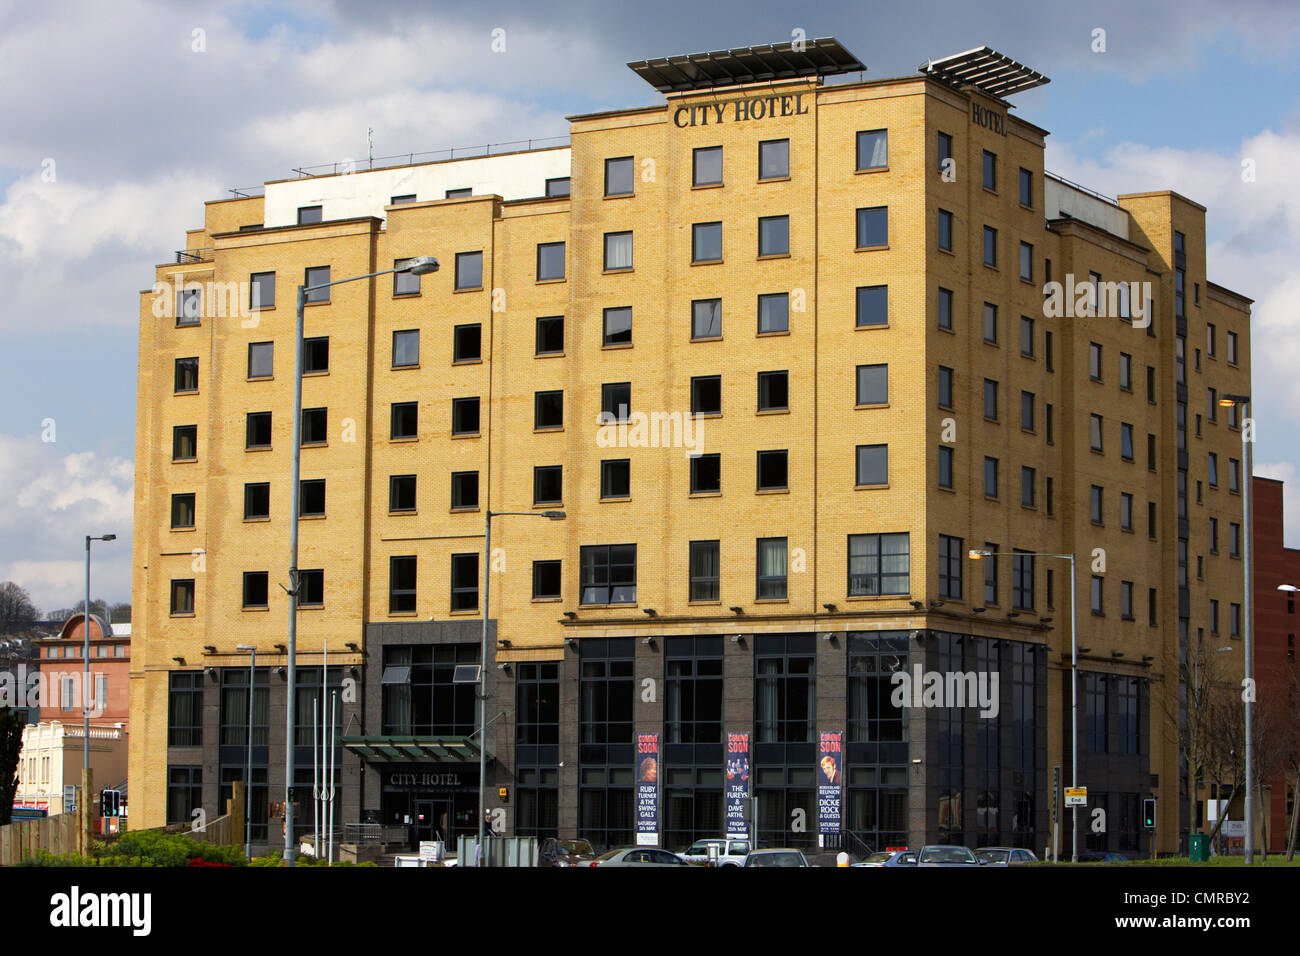 the city hotel Derry city county londonderry northern ireland uk. - Stock Image